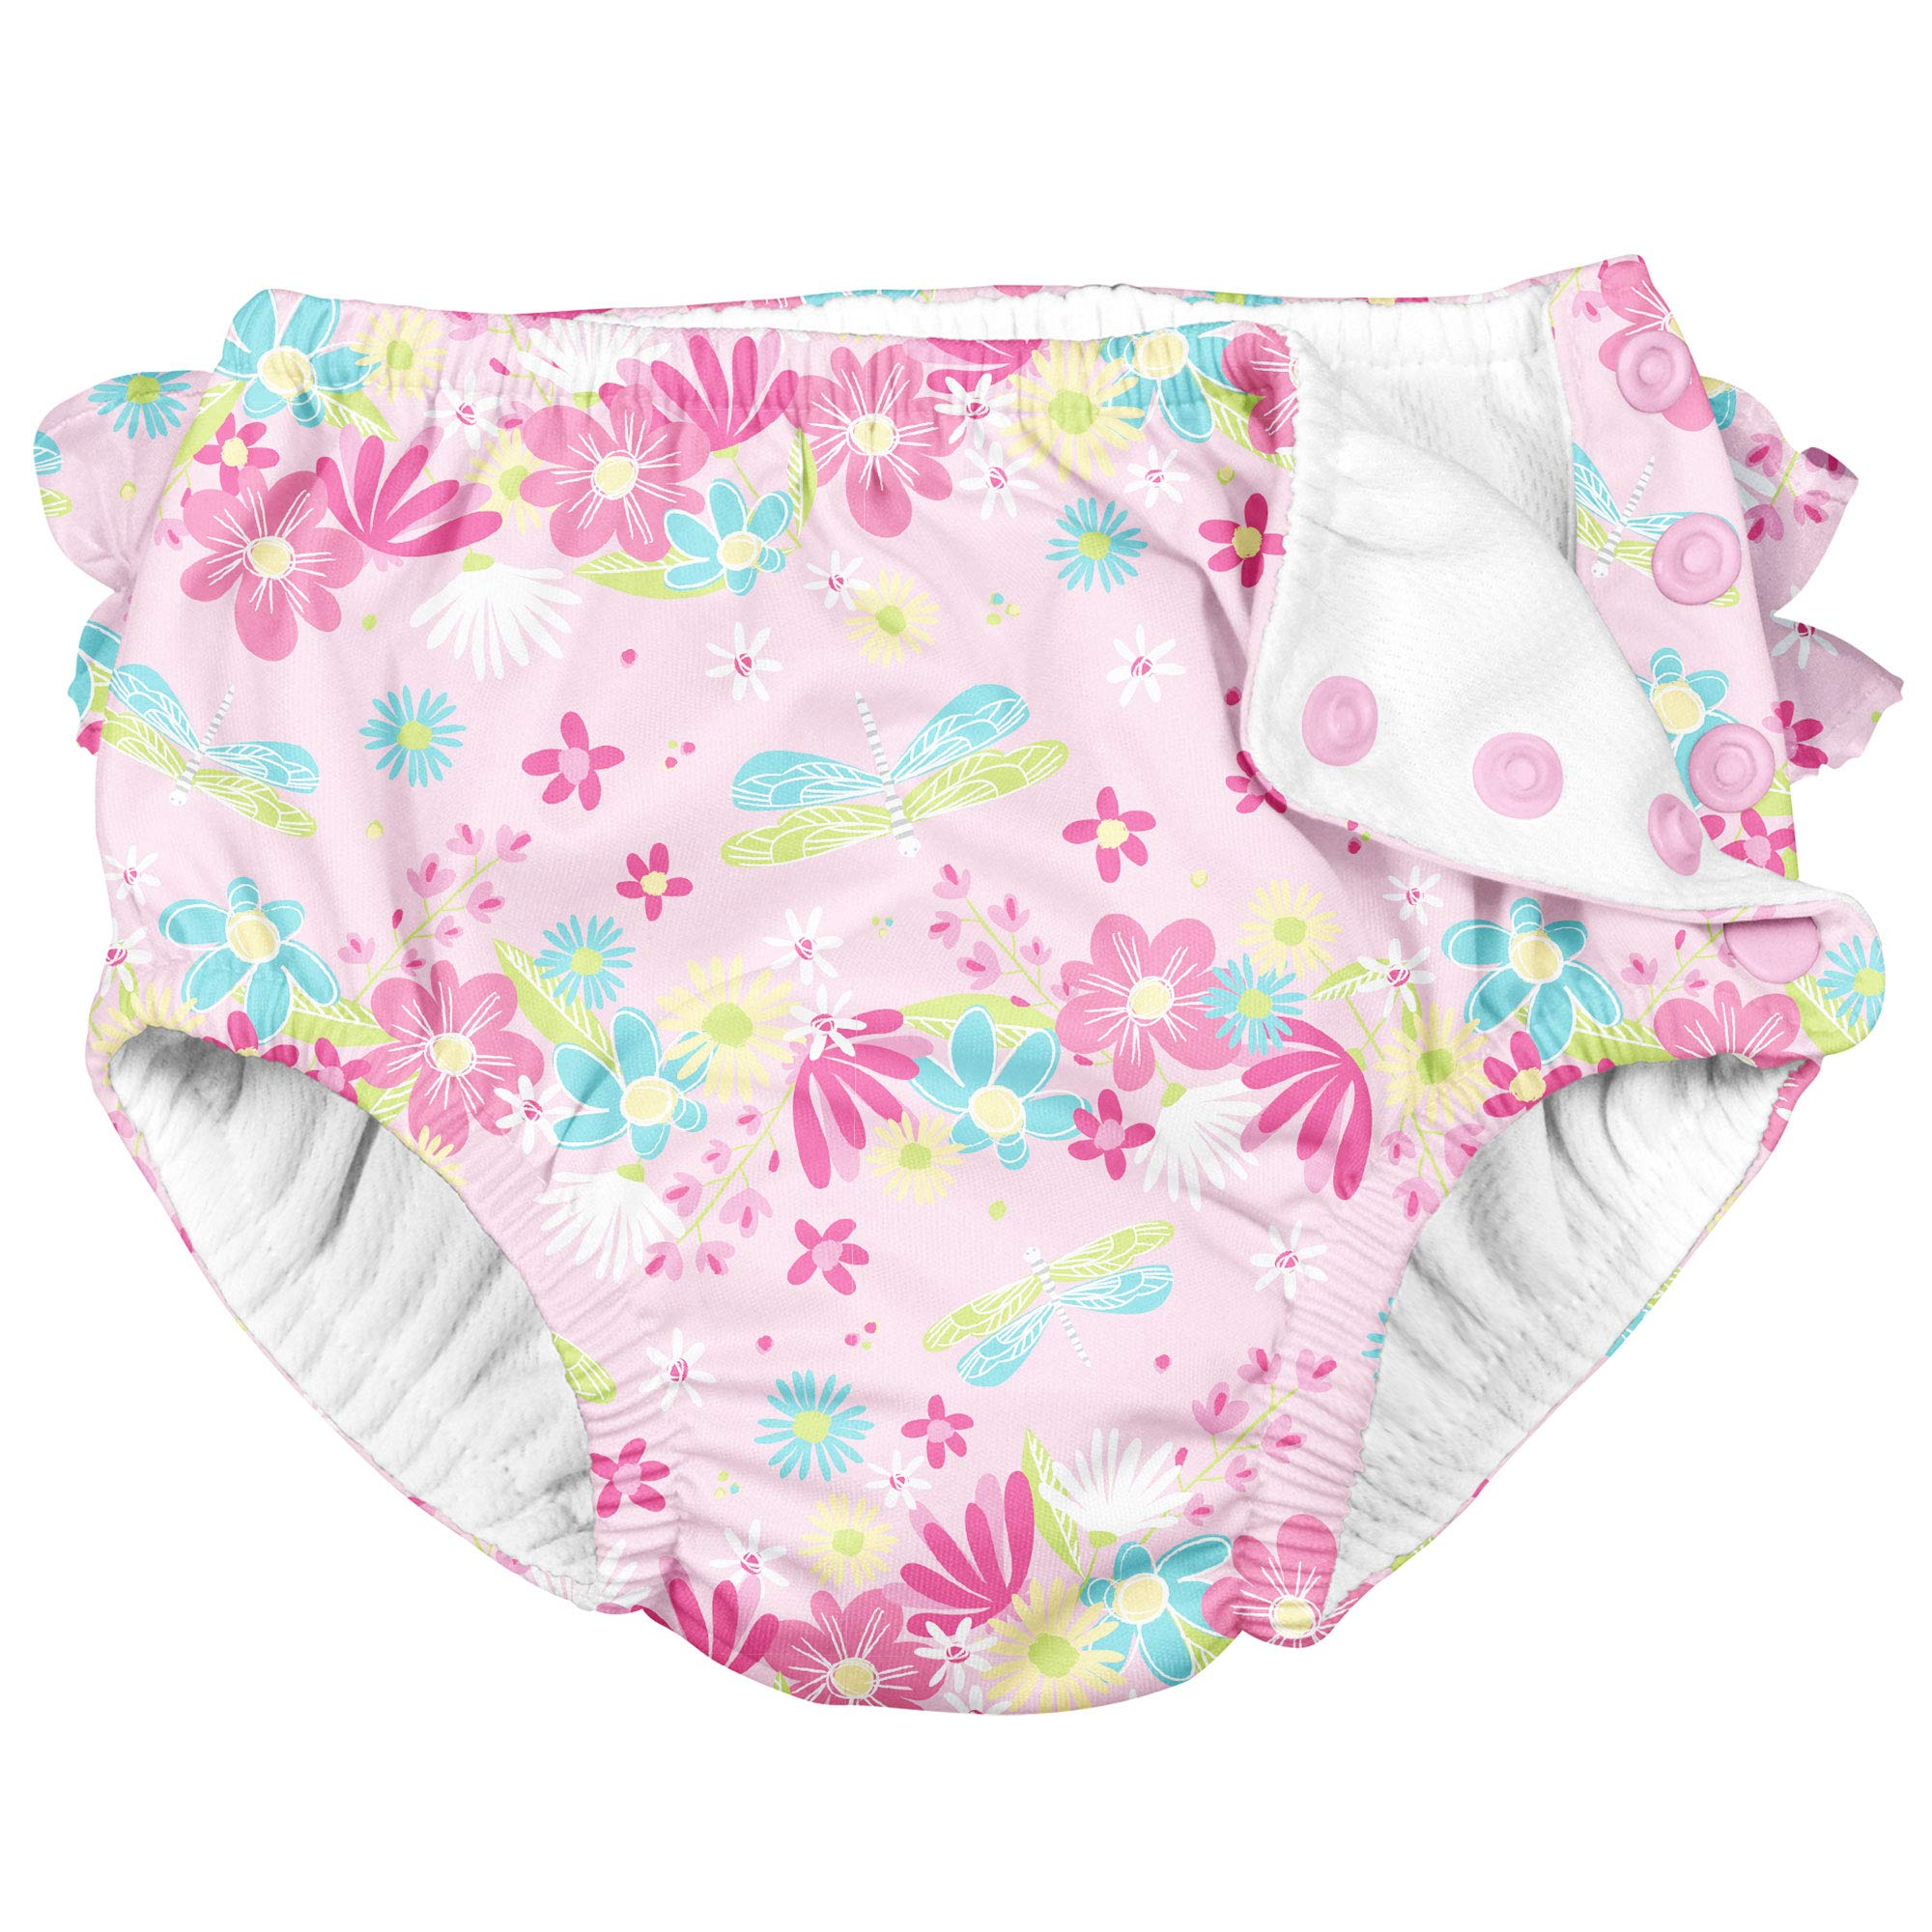 i Play Girls Reusable Absorbent Toddler Swim Diapers - Swimming Suit Bottom | No Other Diaper Necessary Pink Dragonfly 3T